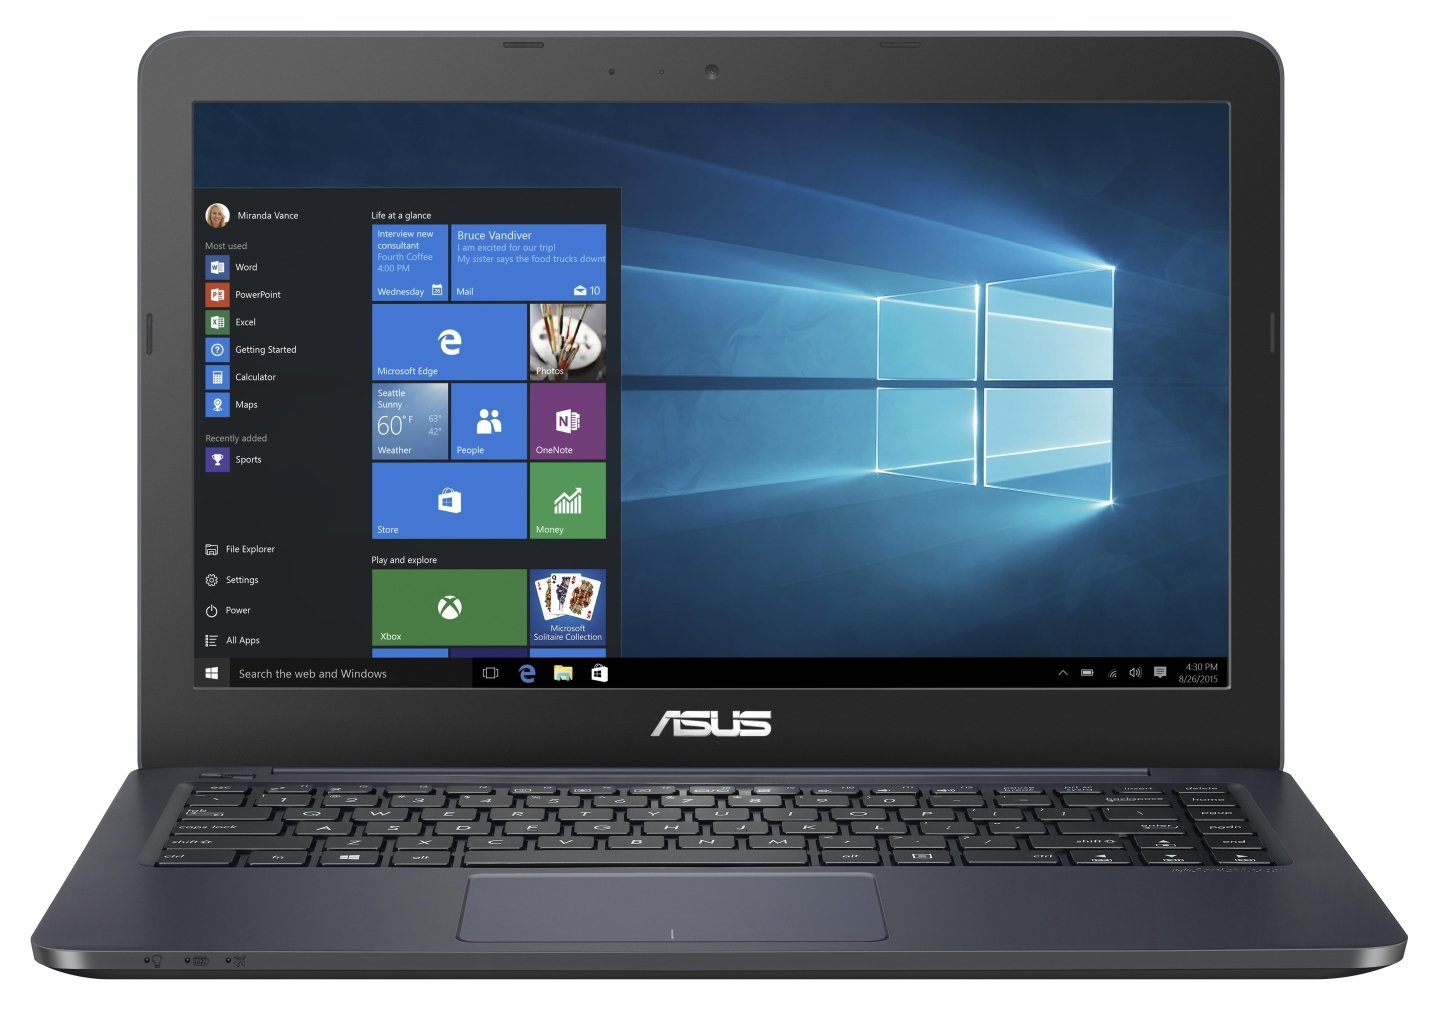 asus-vivobook-l402-14-inch-4gb-32gb-with-office-365-blue